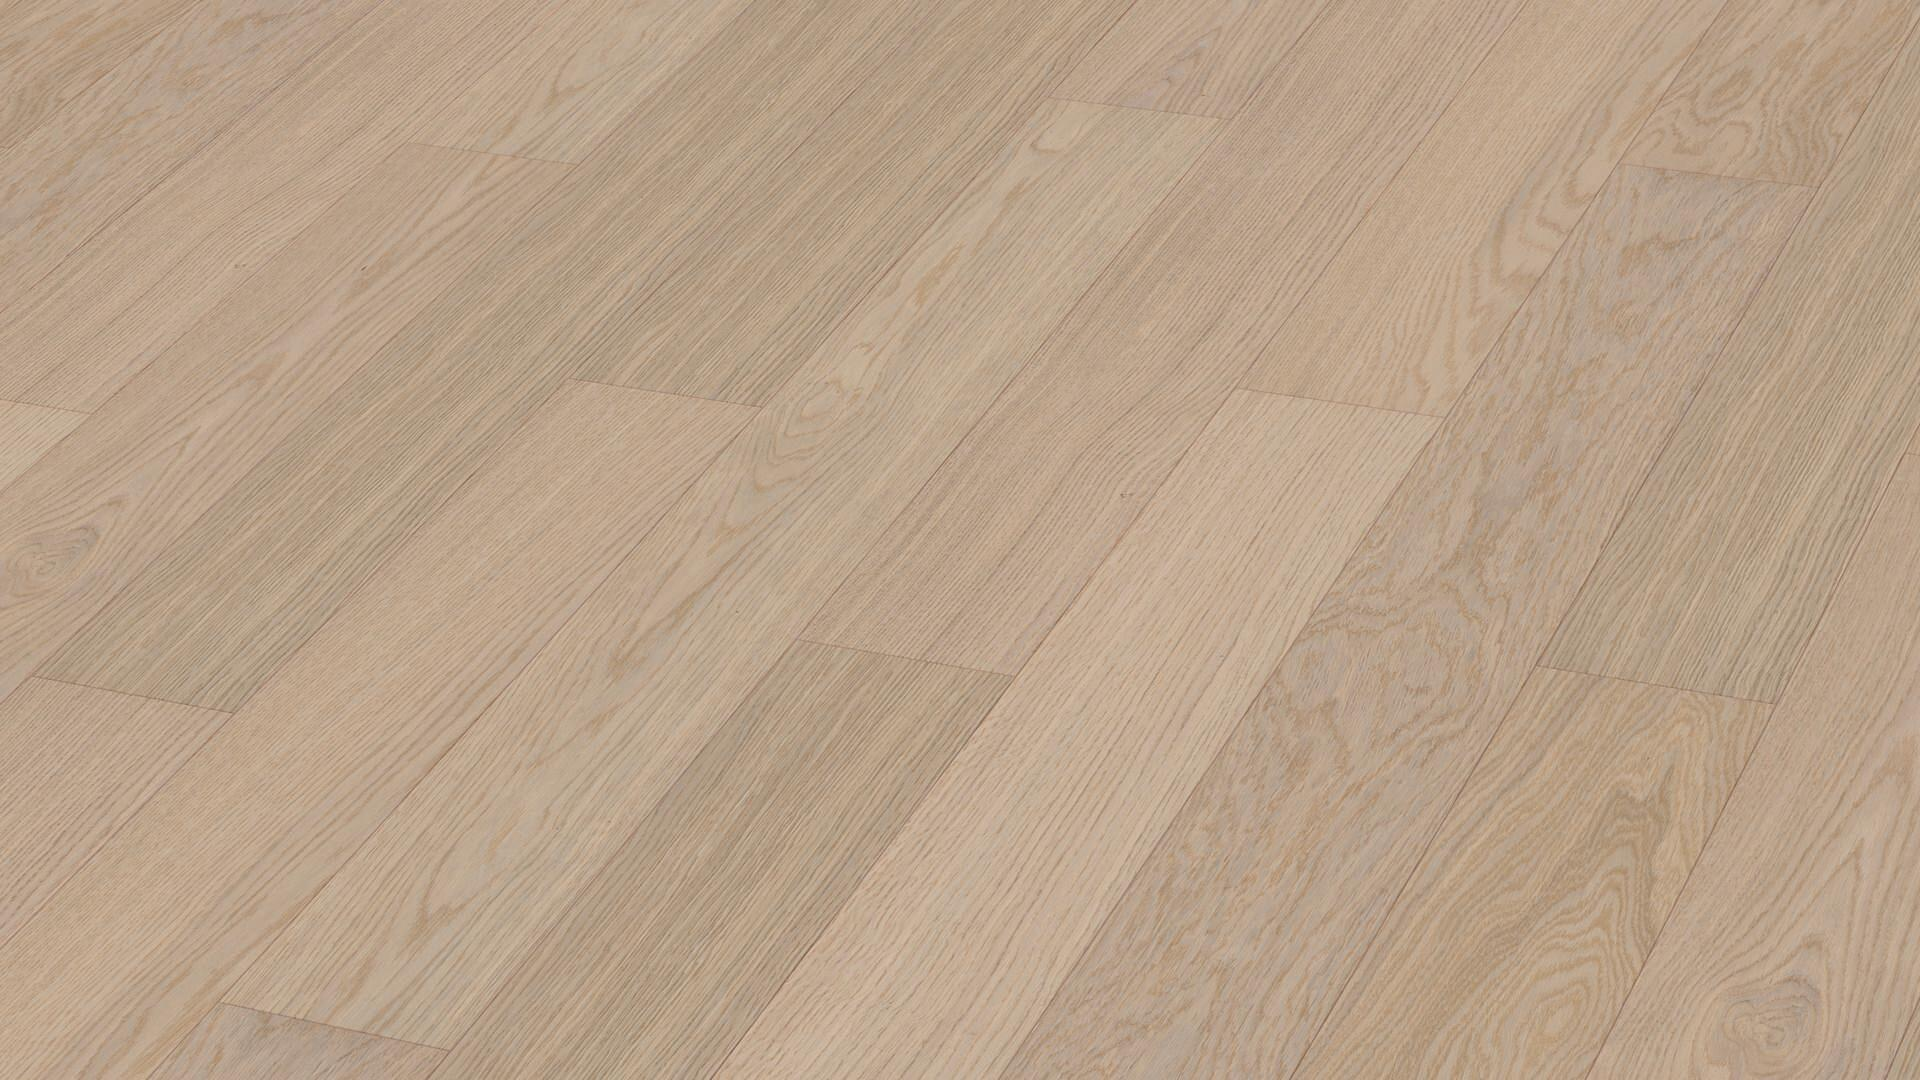 Parquet MeisterParquet. longlife PS 300 Roble armónico pearl 8816